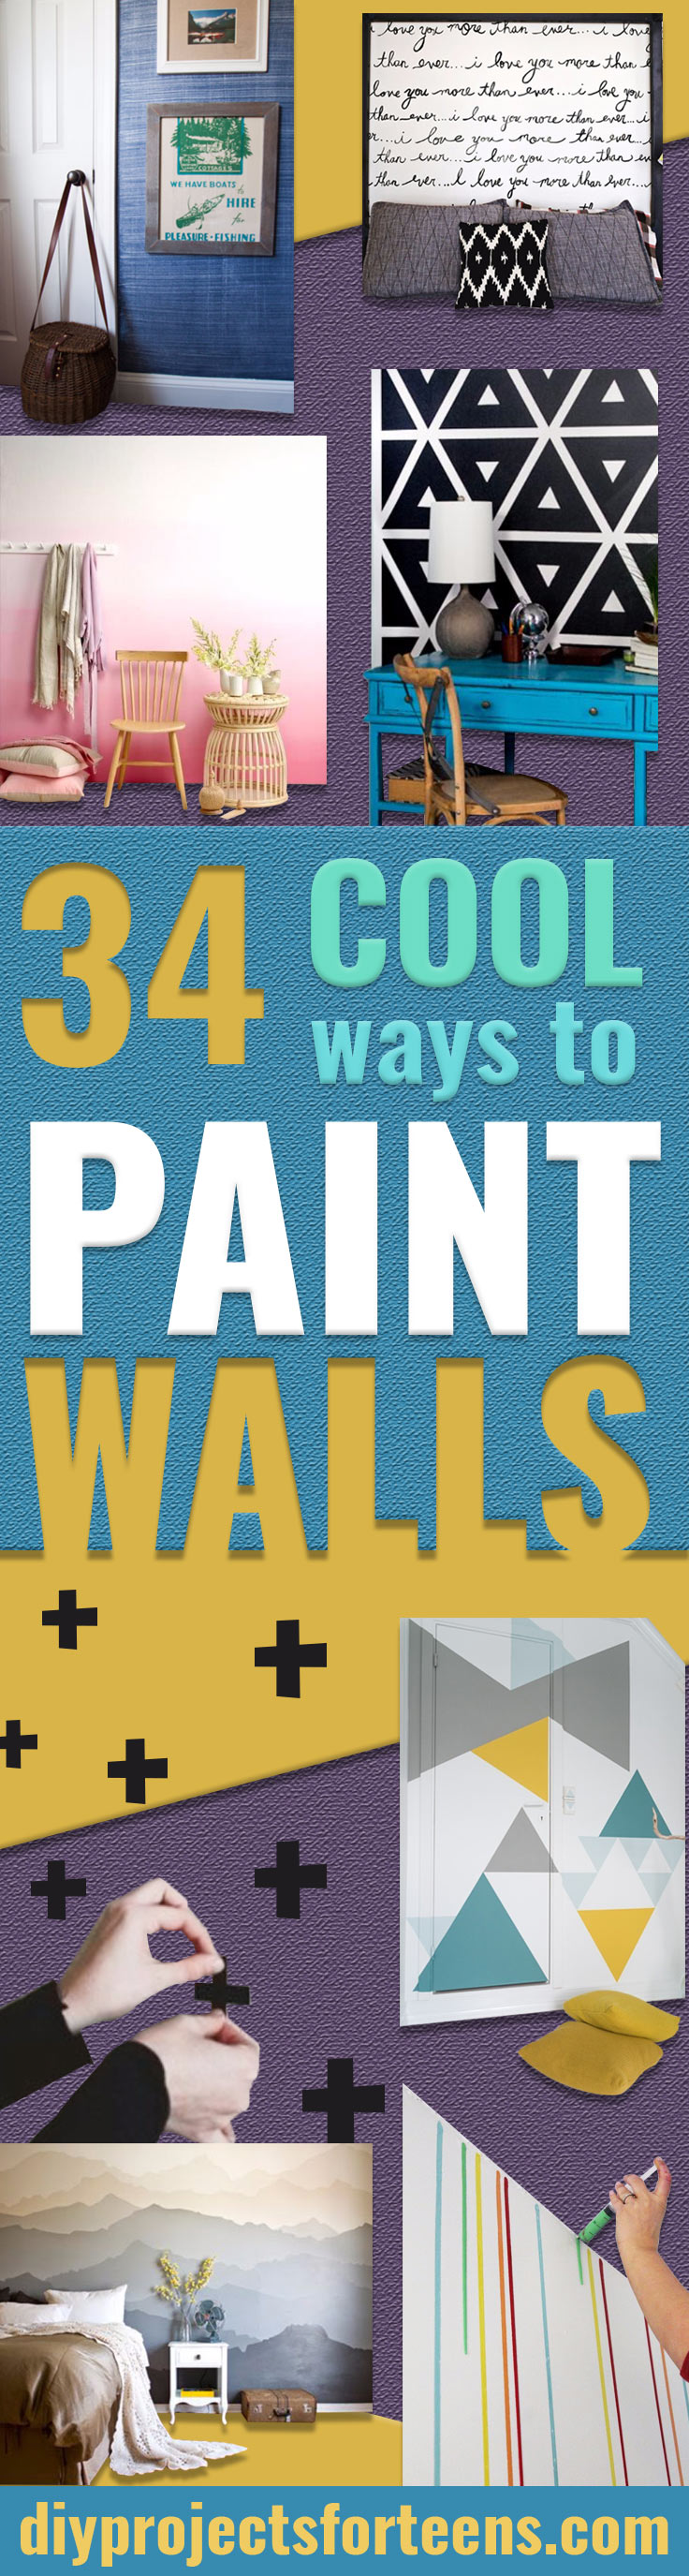 DIY Ideas for Painting Walls - Cool Ways To Paint A Walls In Bedroom- Room Painting Idea - Techniques, Tips, Stencils, Tutorials, Fun Colors and Creative Designs for Living Room, Bedroom, Kids Room, Bathroom and Kitchen #homeimprovement #diydecor #roomideas #teenrooms #walldecor #paintingideas